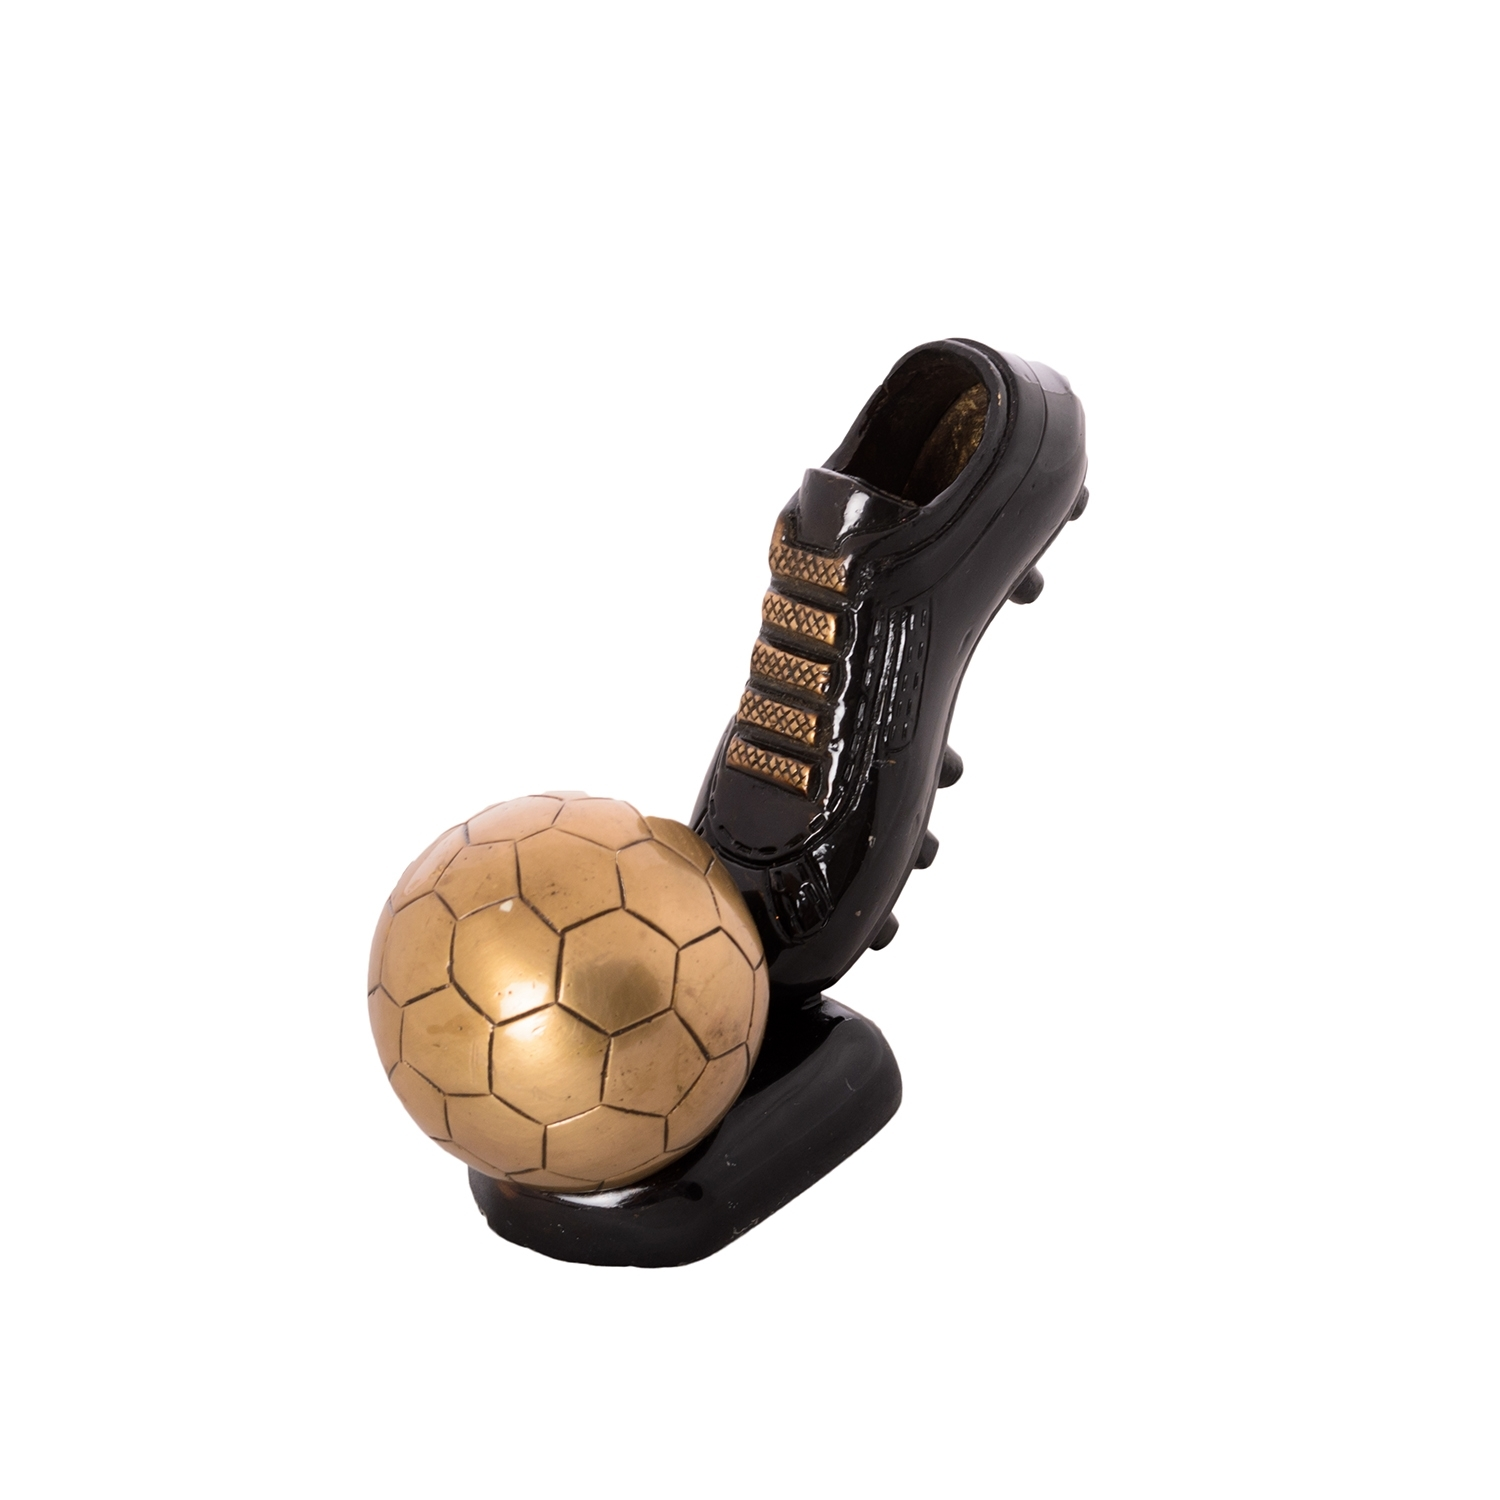 Decorative Soccer Ball and Shoe Brass Tableware  Indian Home Decor